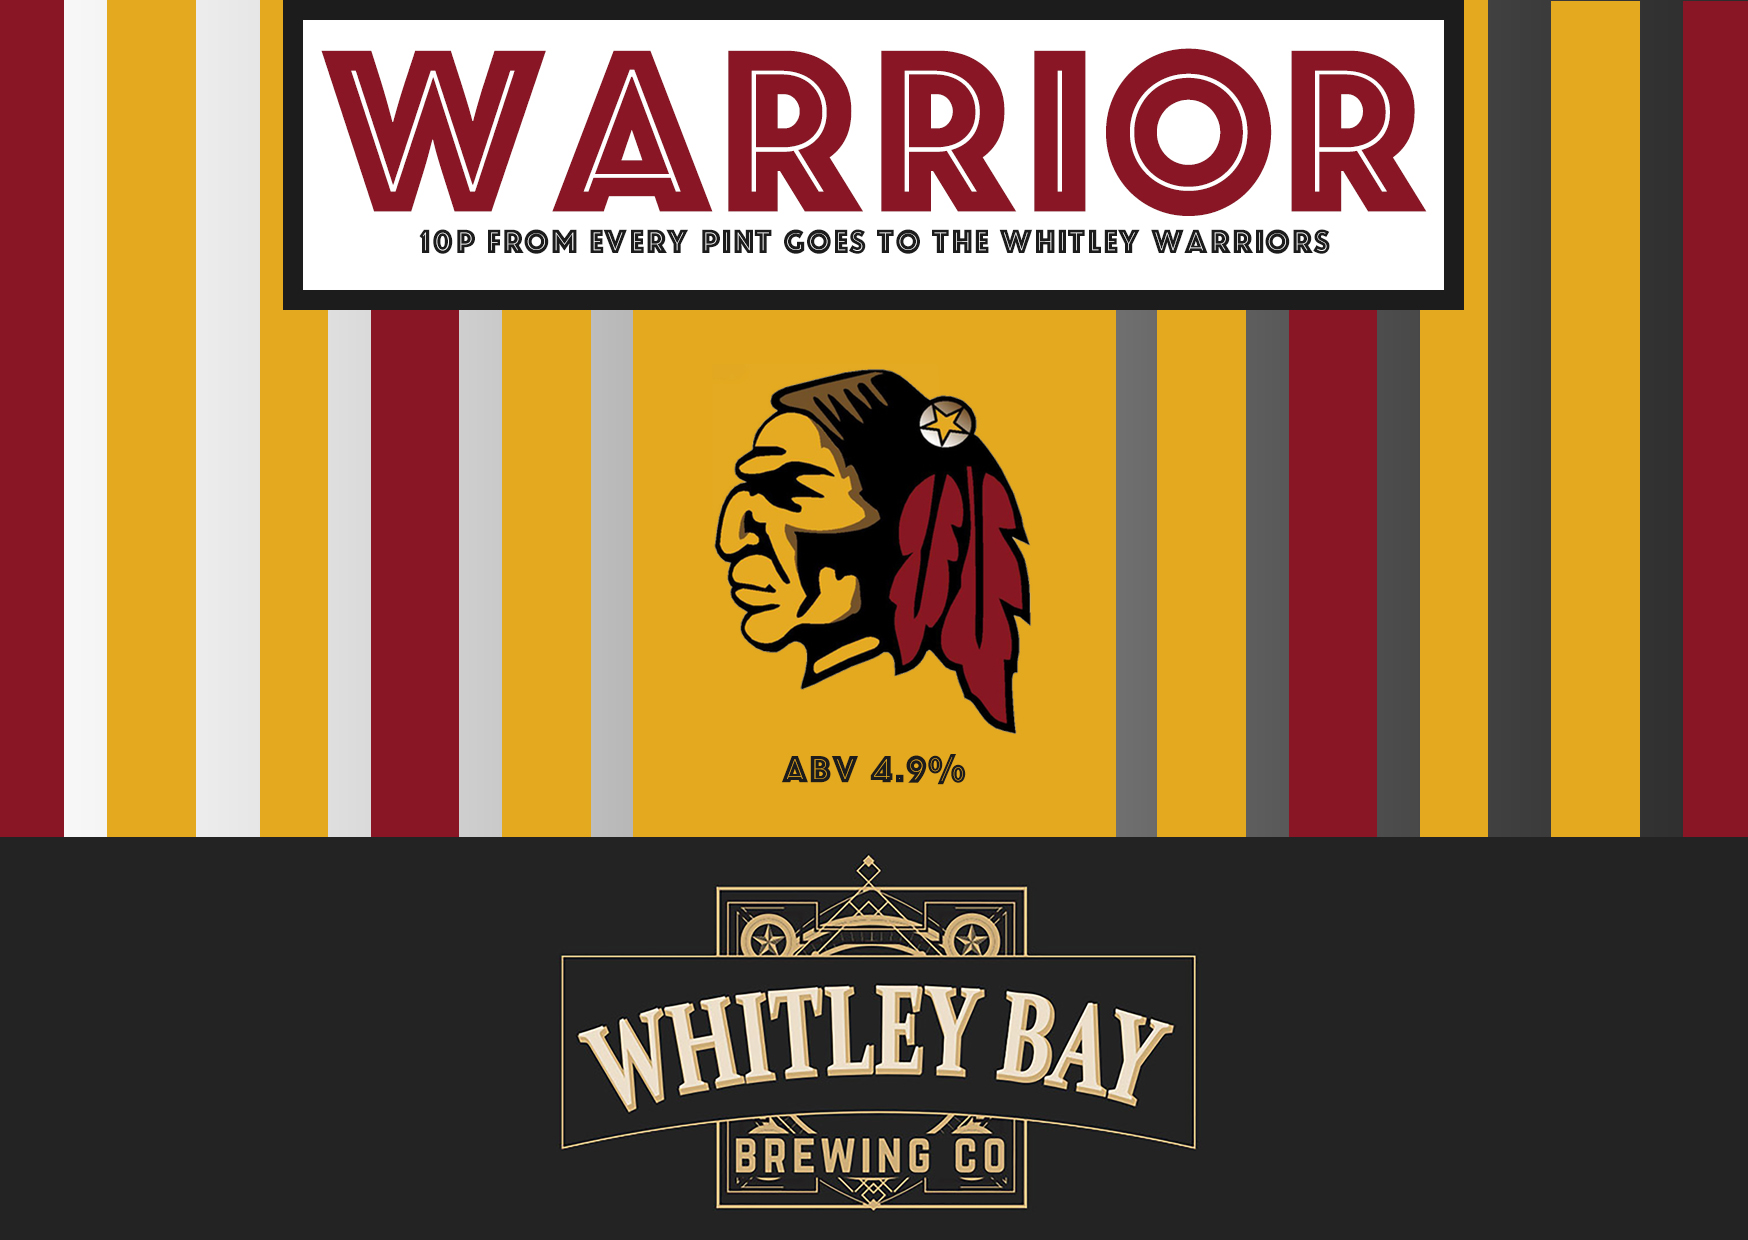 Whitley Bay Brewing Co programme advert 2017